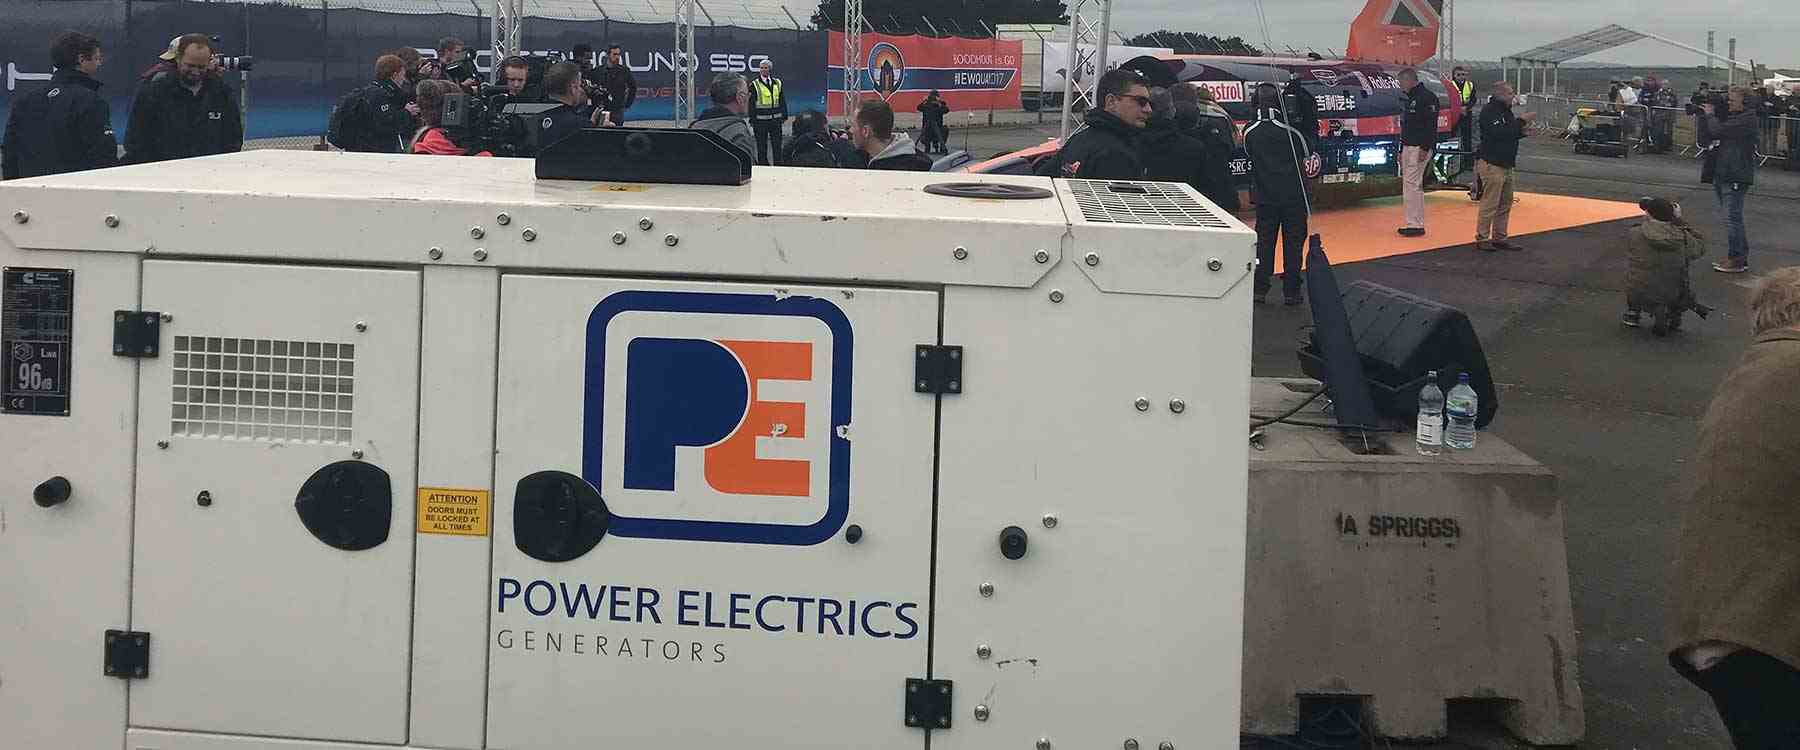 Power Electrics generator in front of the Bloodhound event)